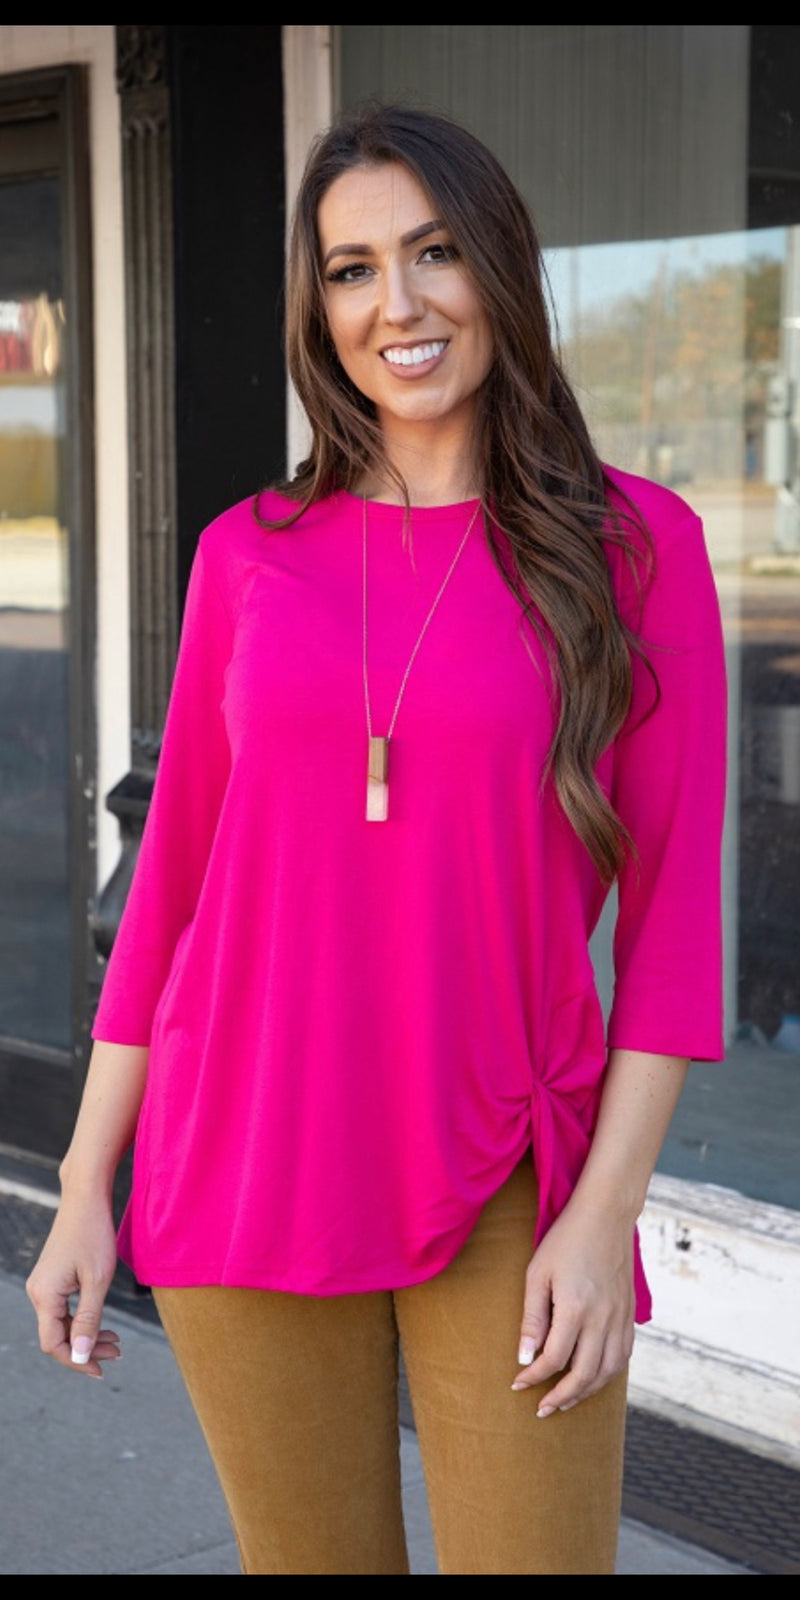 Frisco Hot Pink Knotty Top - Also in Plus Size